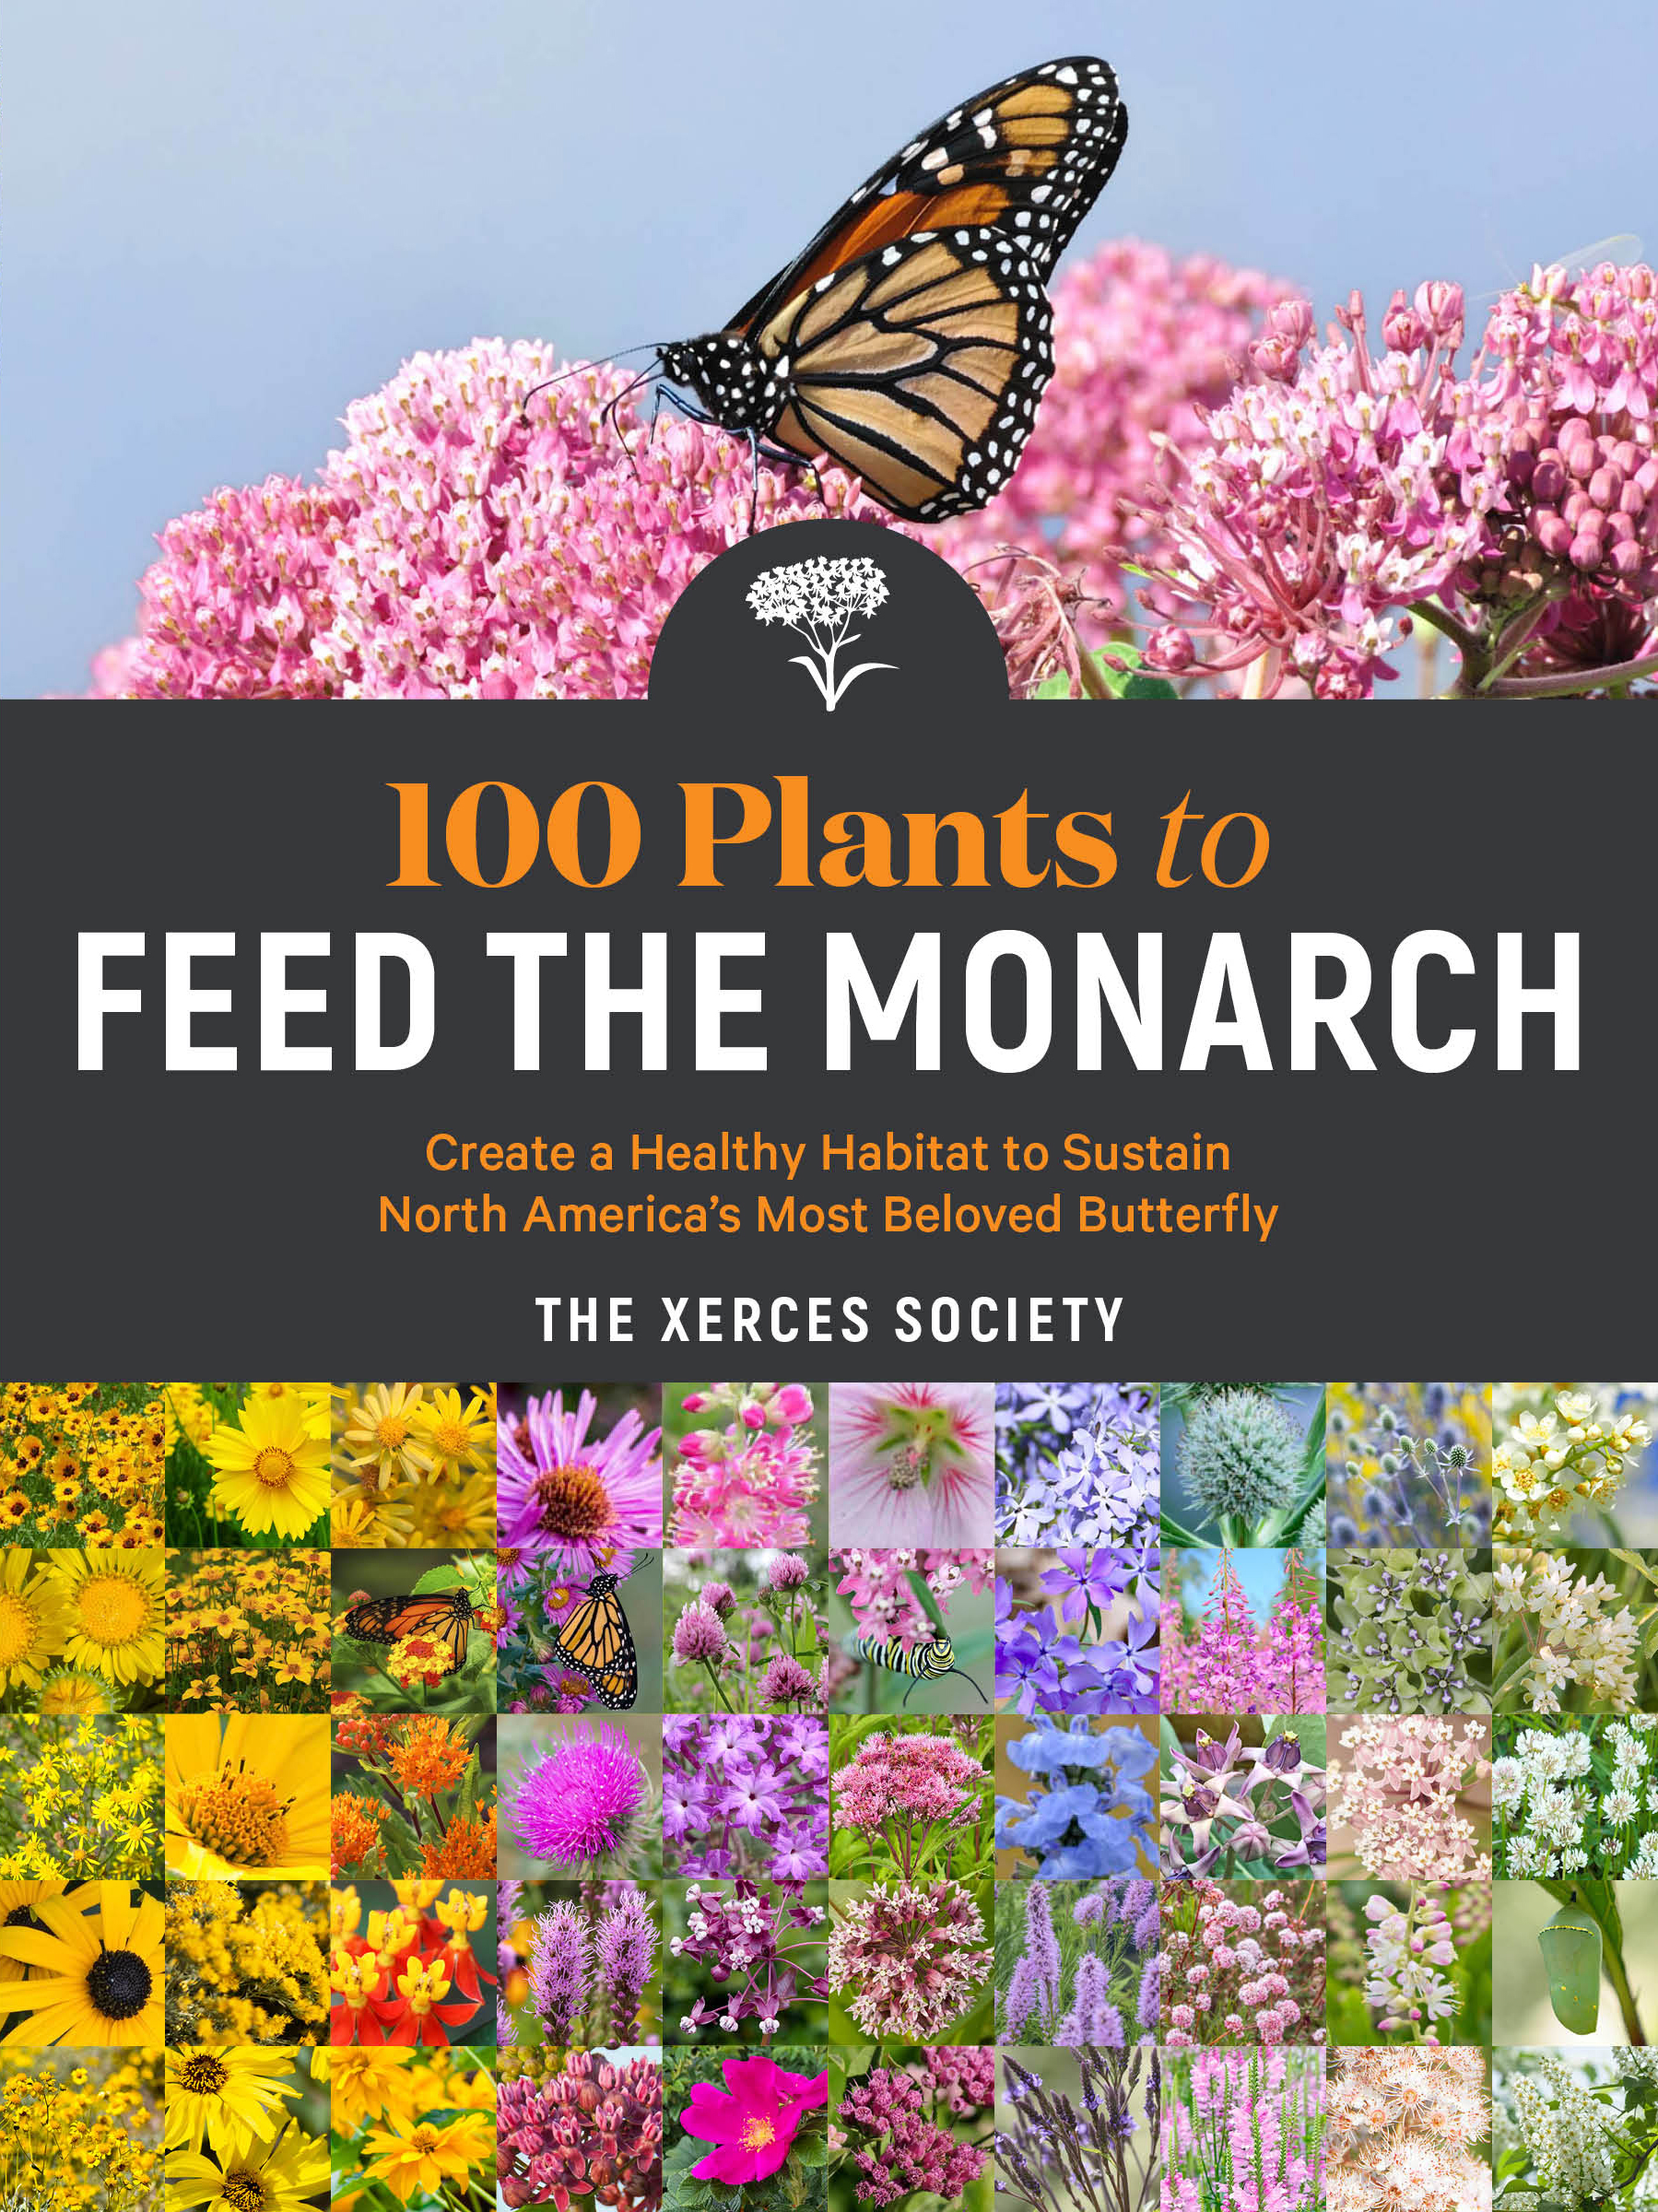 100 Plants to Feed the Monarch Create a Healthy Habitat to Sustain North America's Most Beloved Butterfly - The Xerces Society